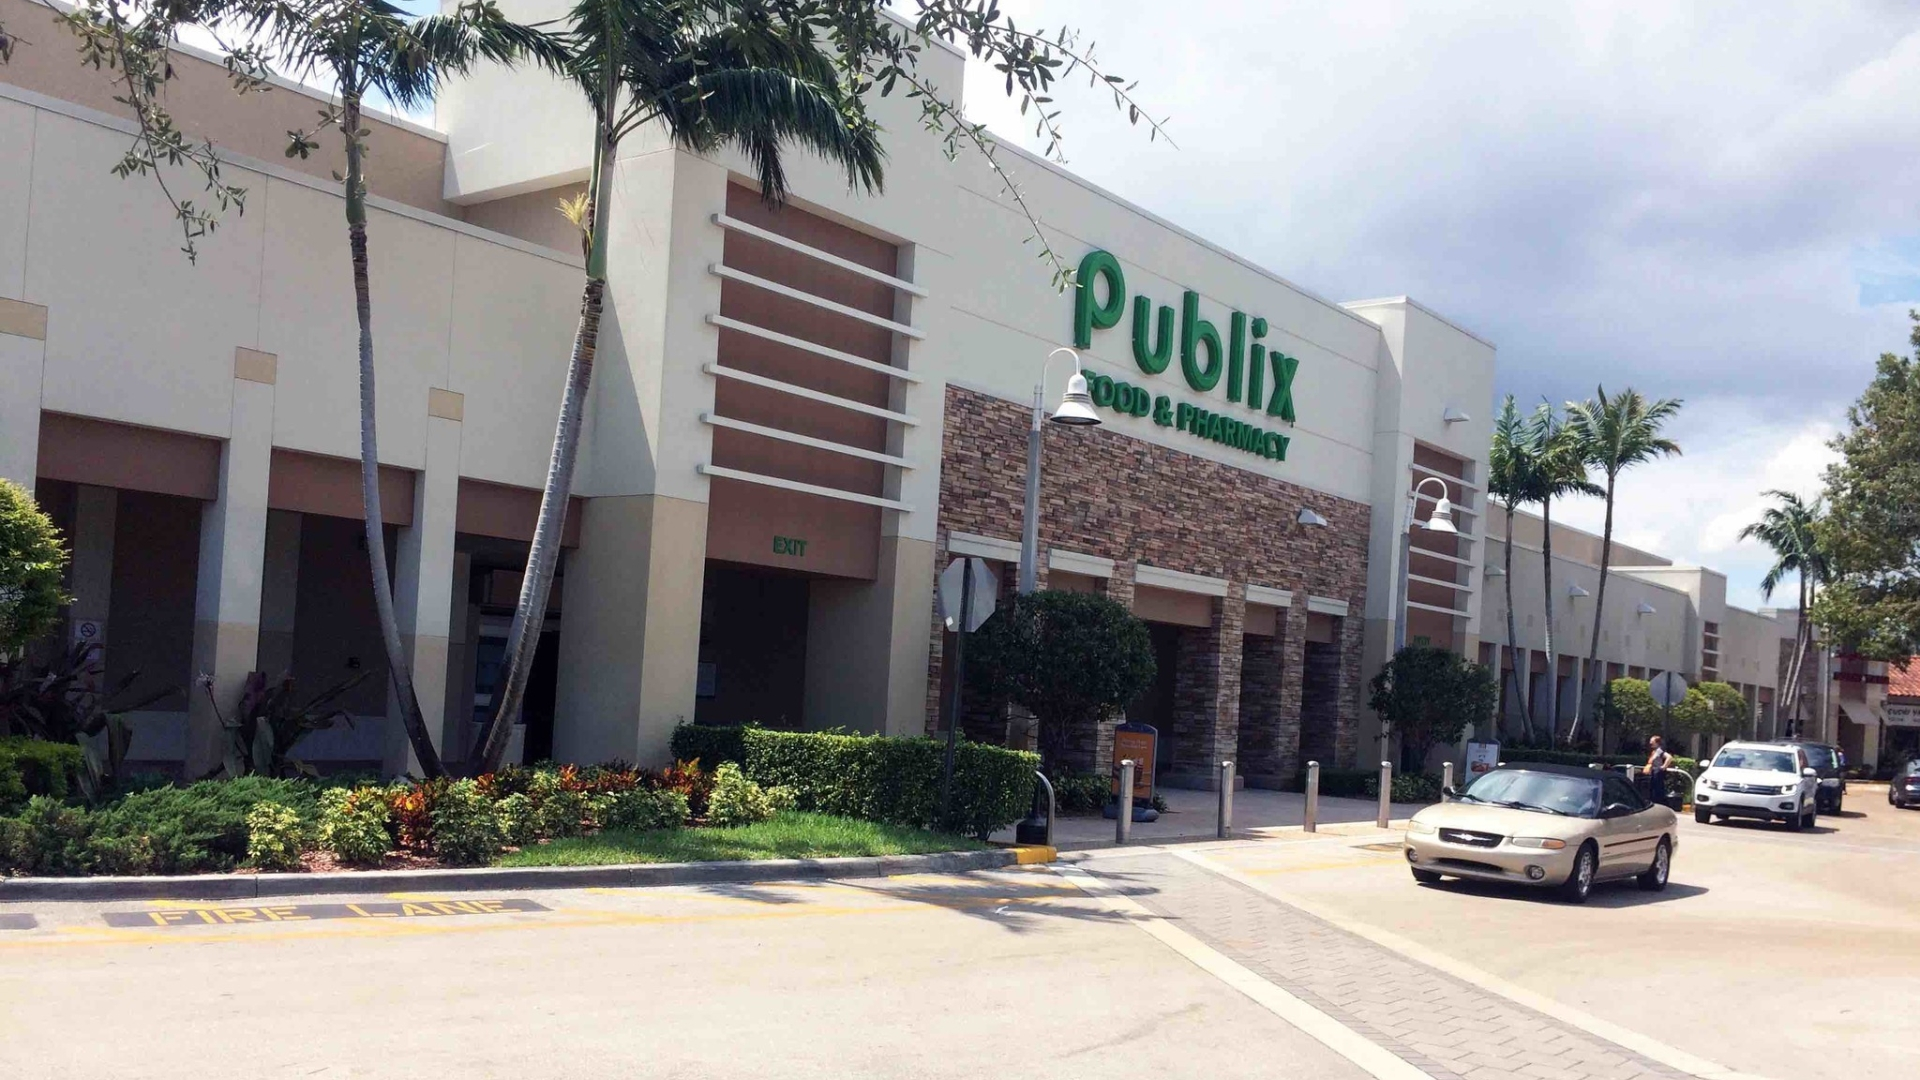 All eyes on Publix: What crisis experts have to say about a